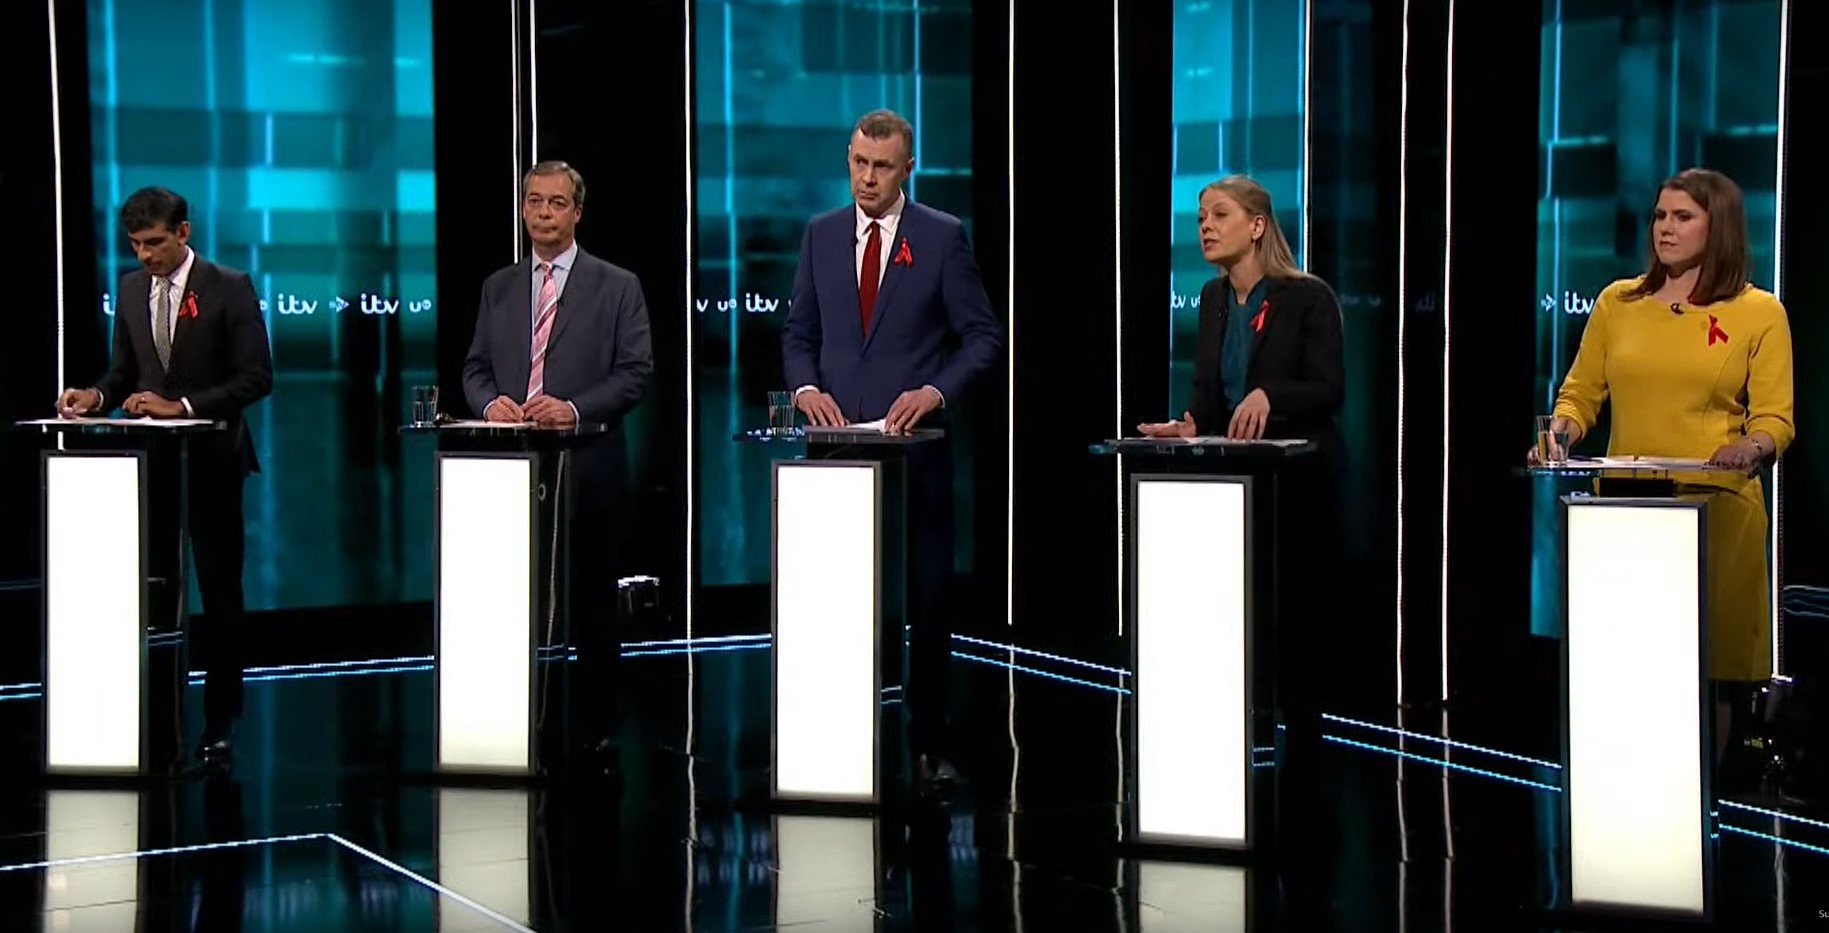 Some of the participants in the ITV leaders debate.